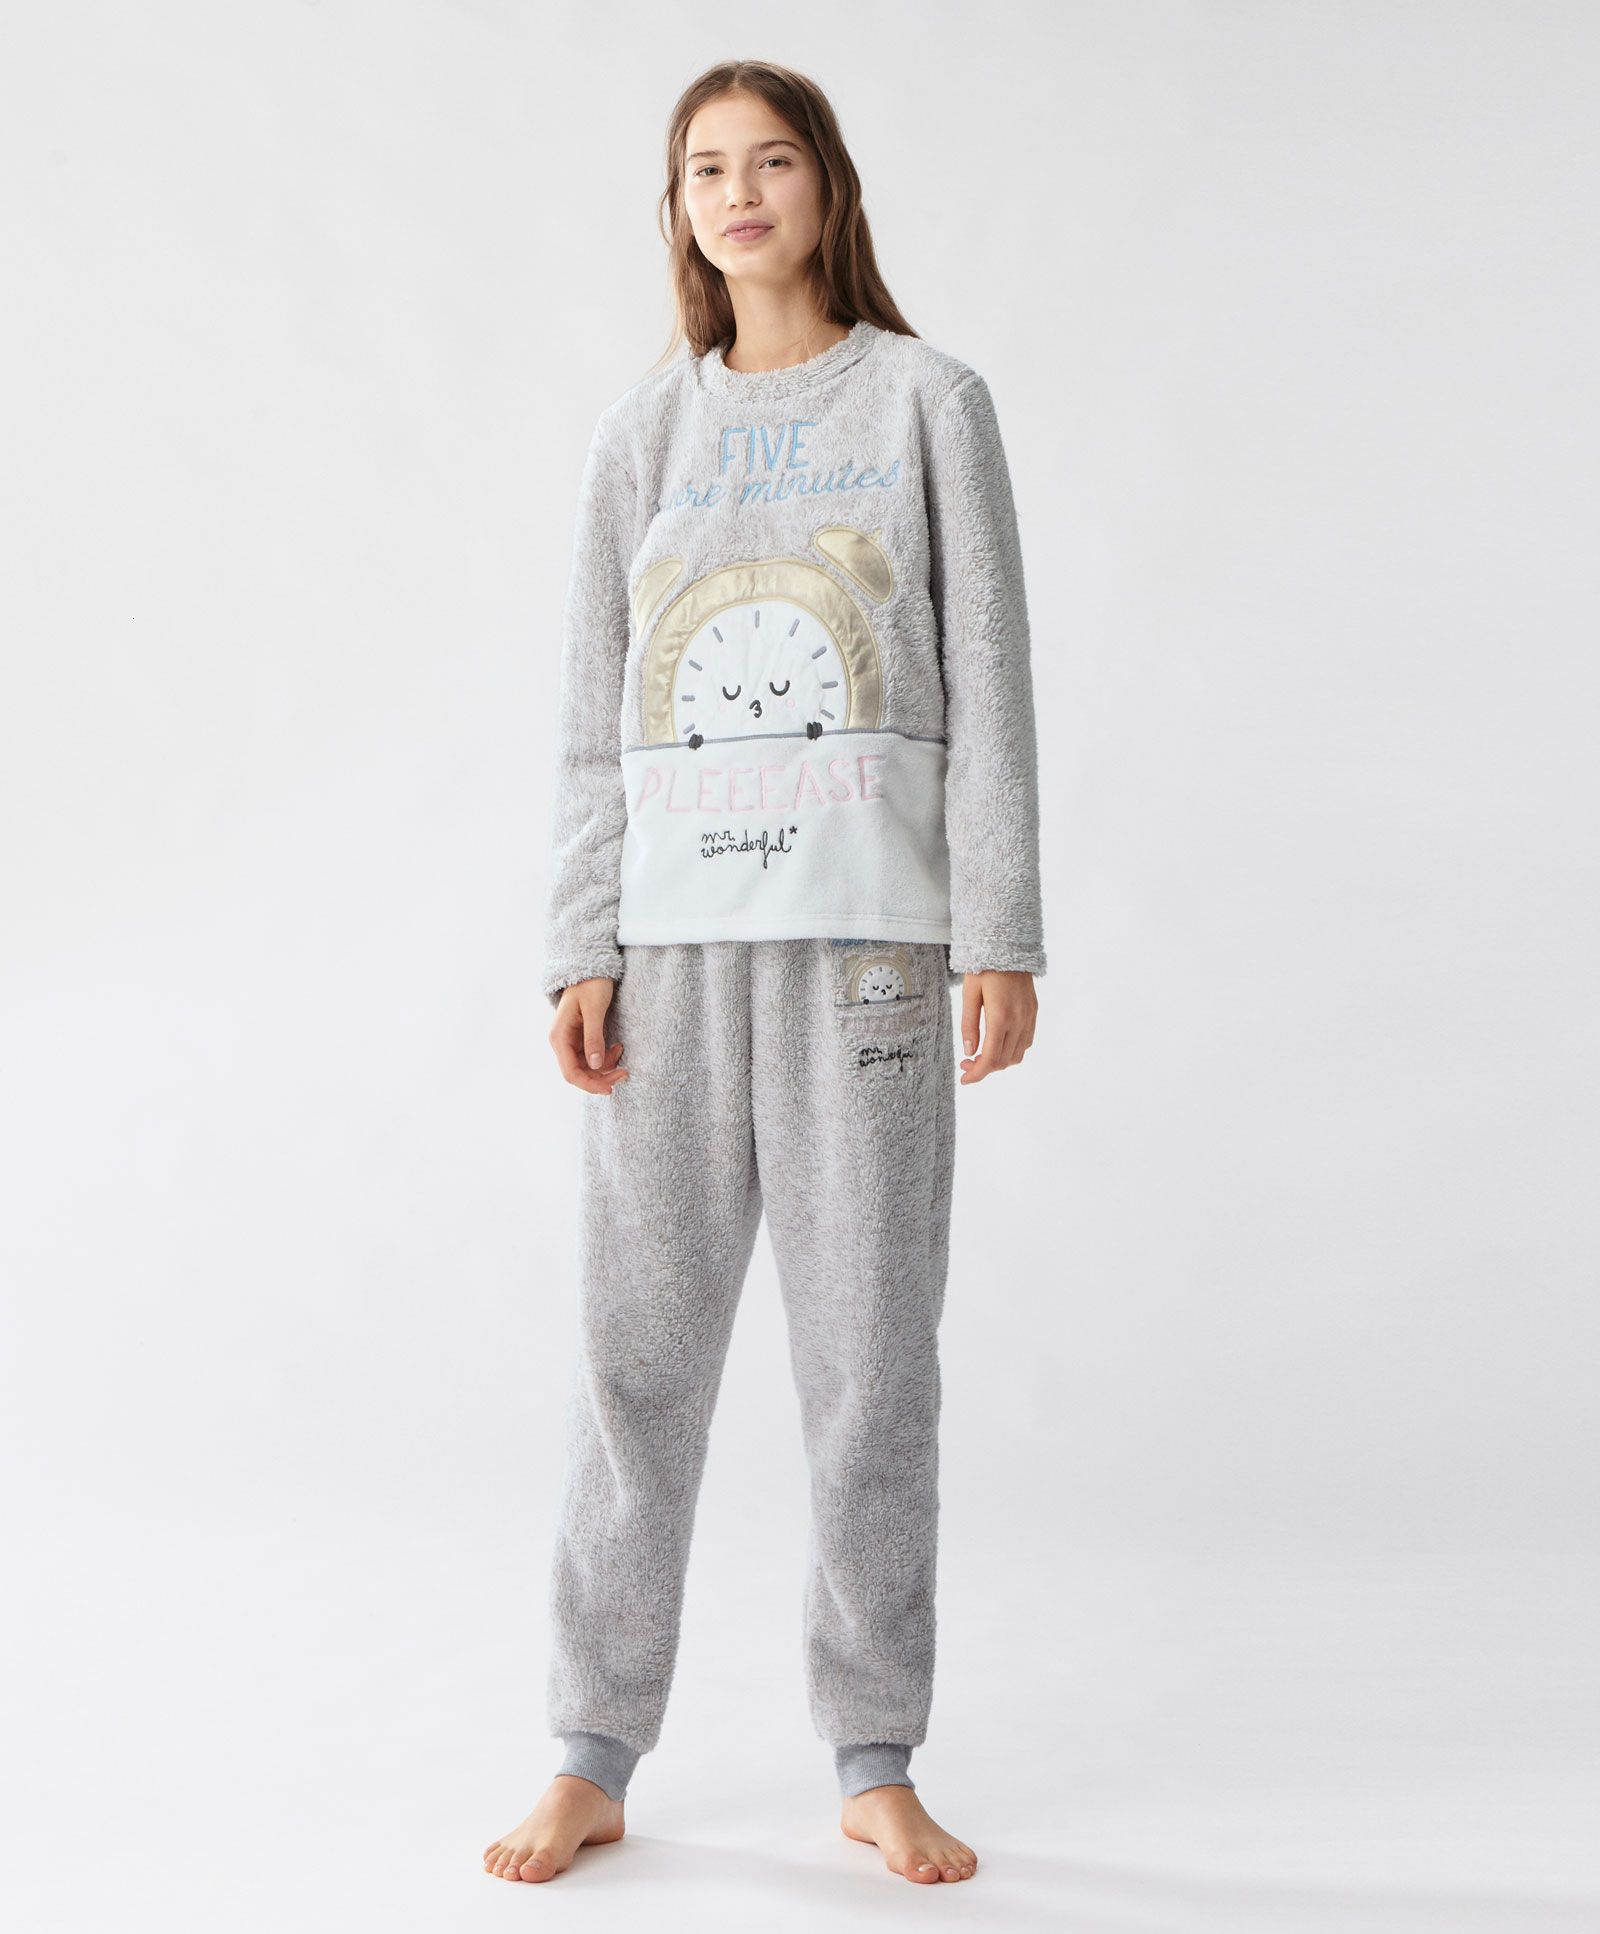 bcf09dcf30a92 Mr.Wonderful watch trousers - Fleeces - PYJAMAS